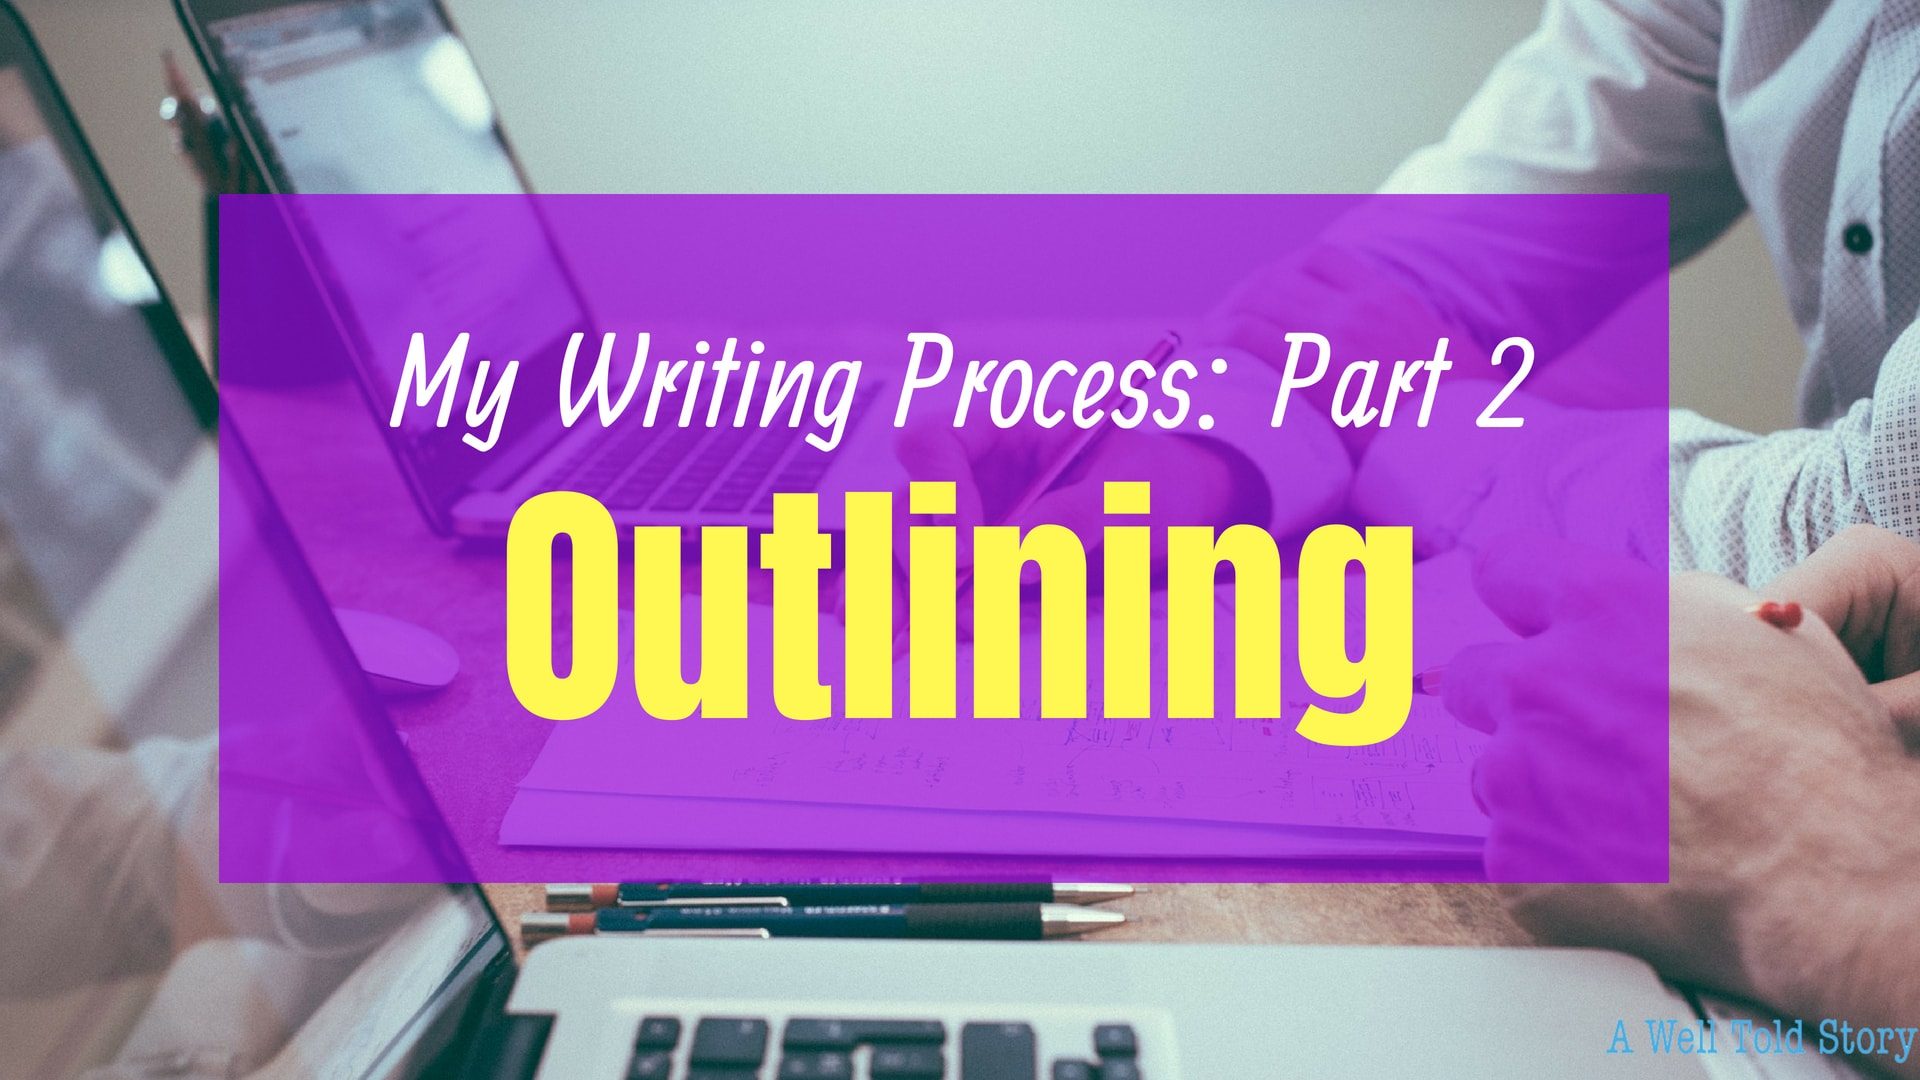 My writing Process--Part 2: outlining